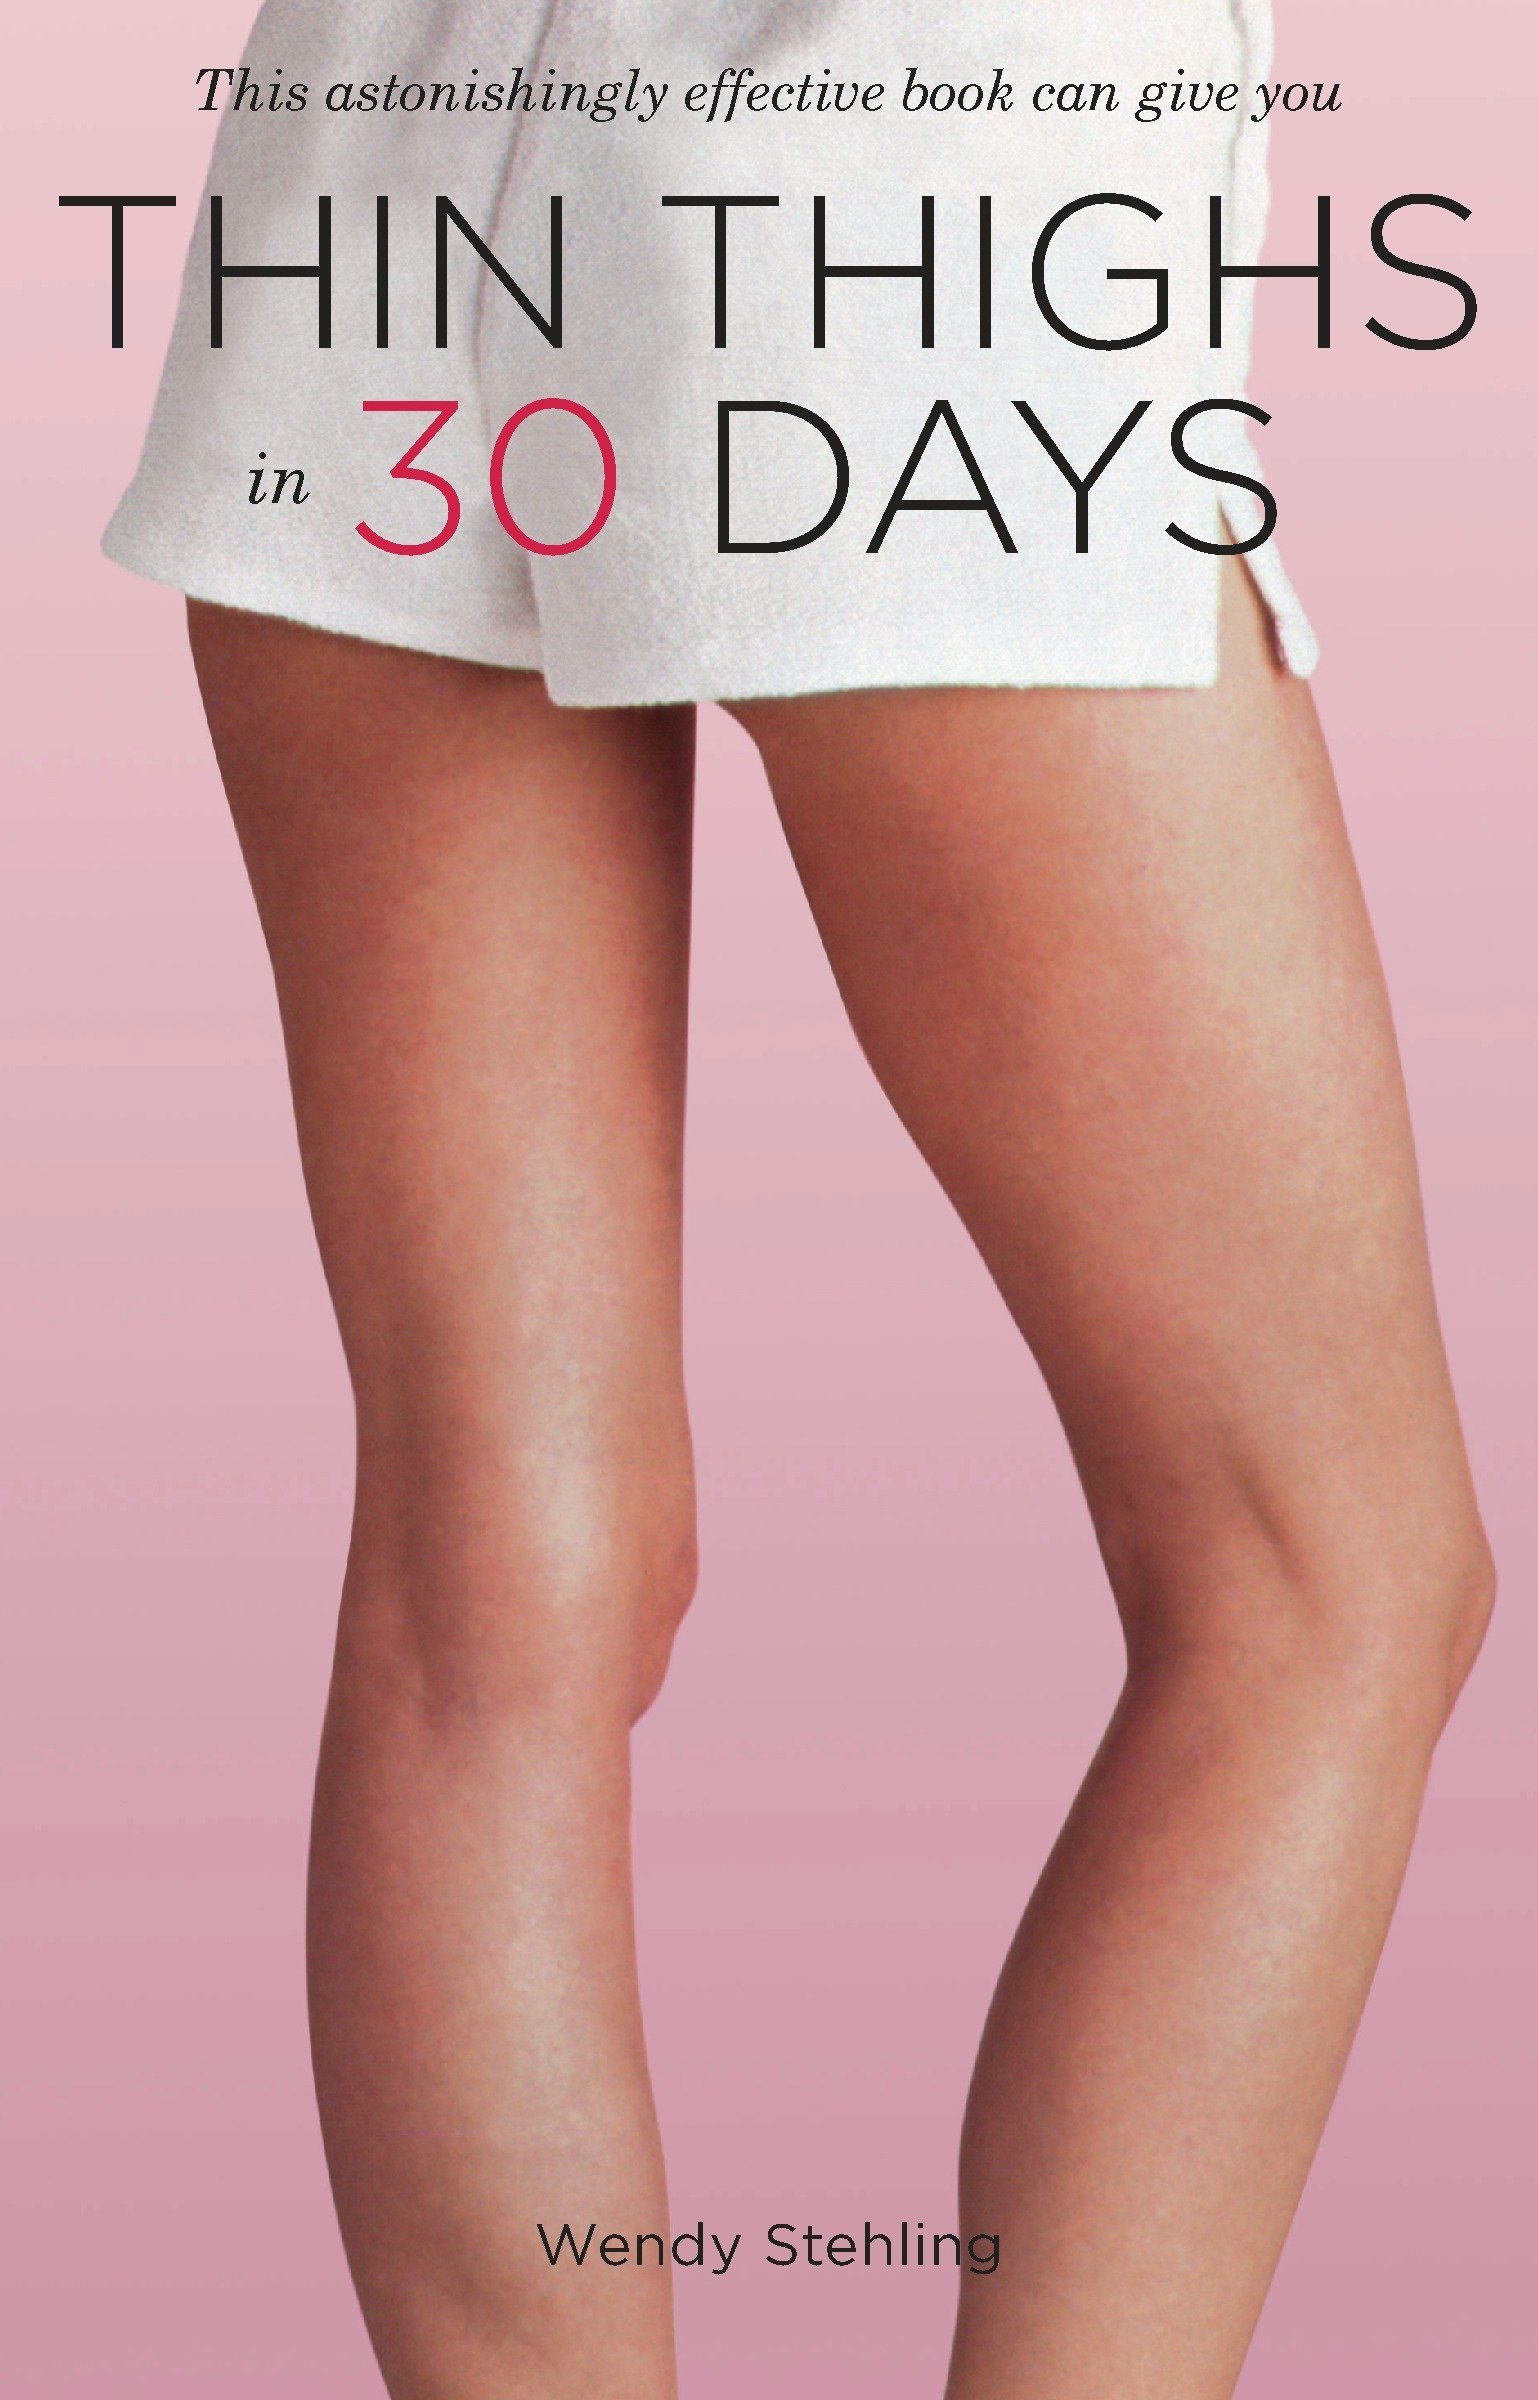 thinner thighs in 30 days free download